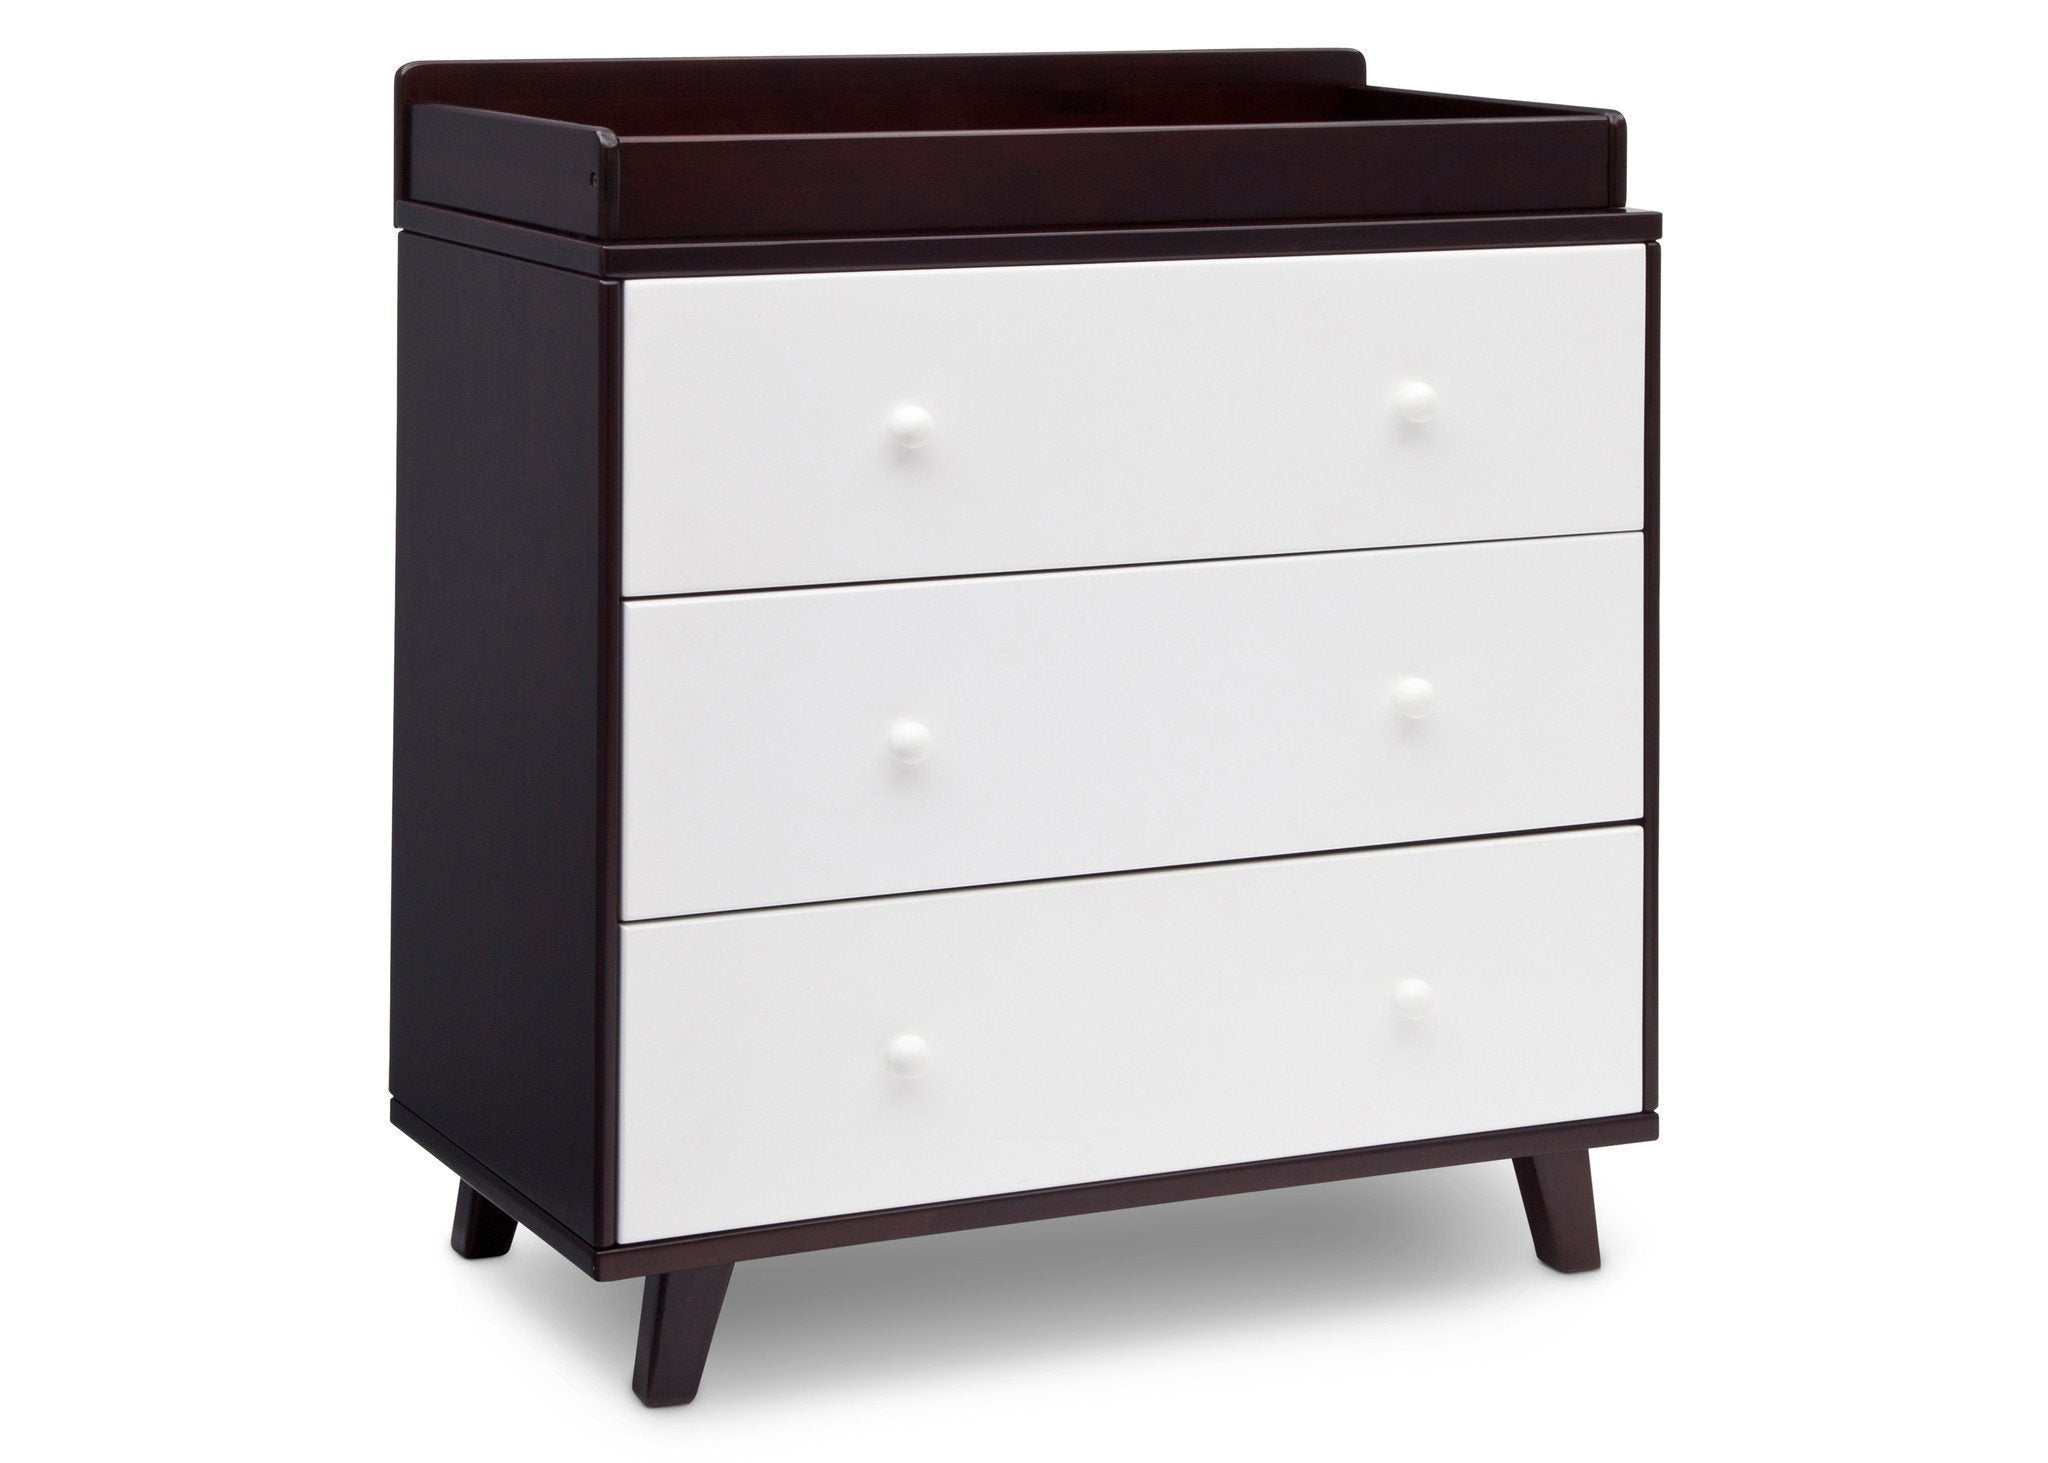 Delta Children Black Espresso with White (918) Ava 3 Drawer Dresser with Changing Top, Side View b2b